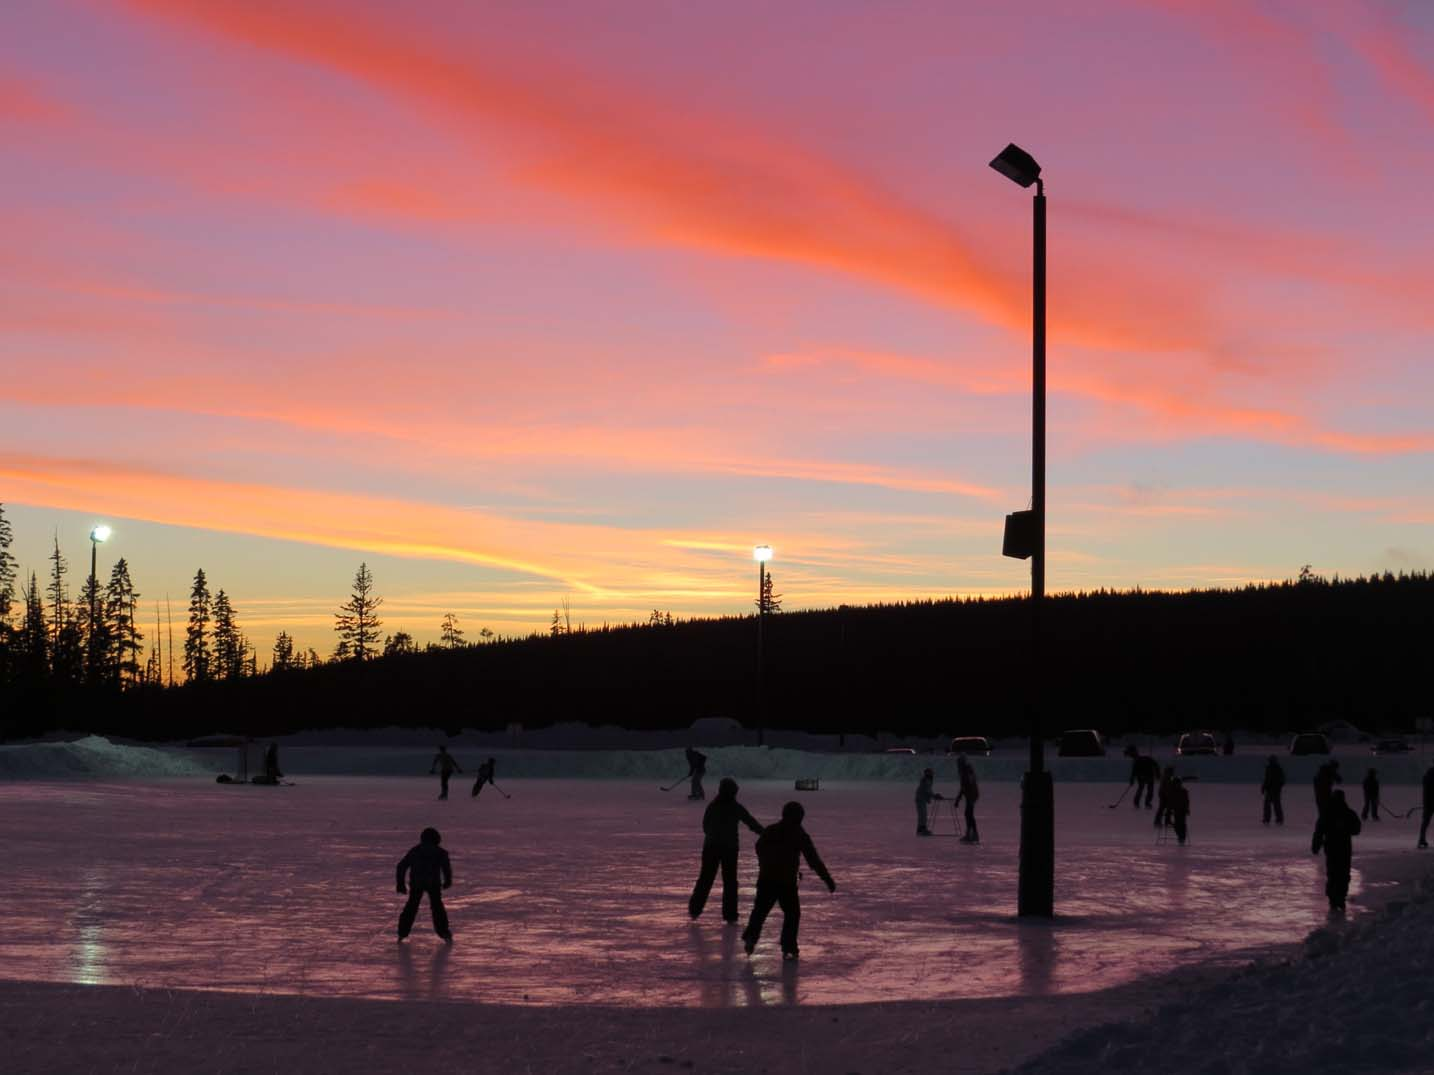 Skating at Big White Ski Resort at sunset